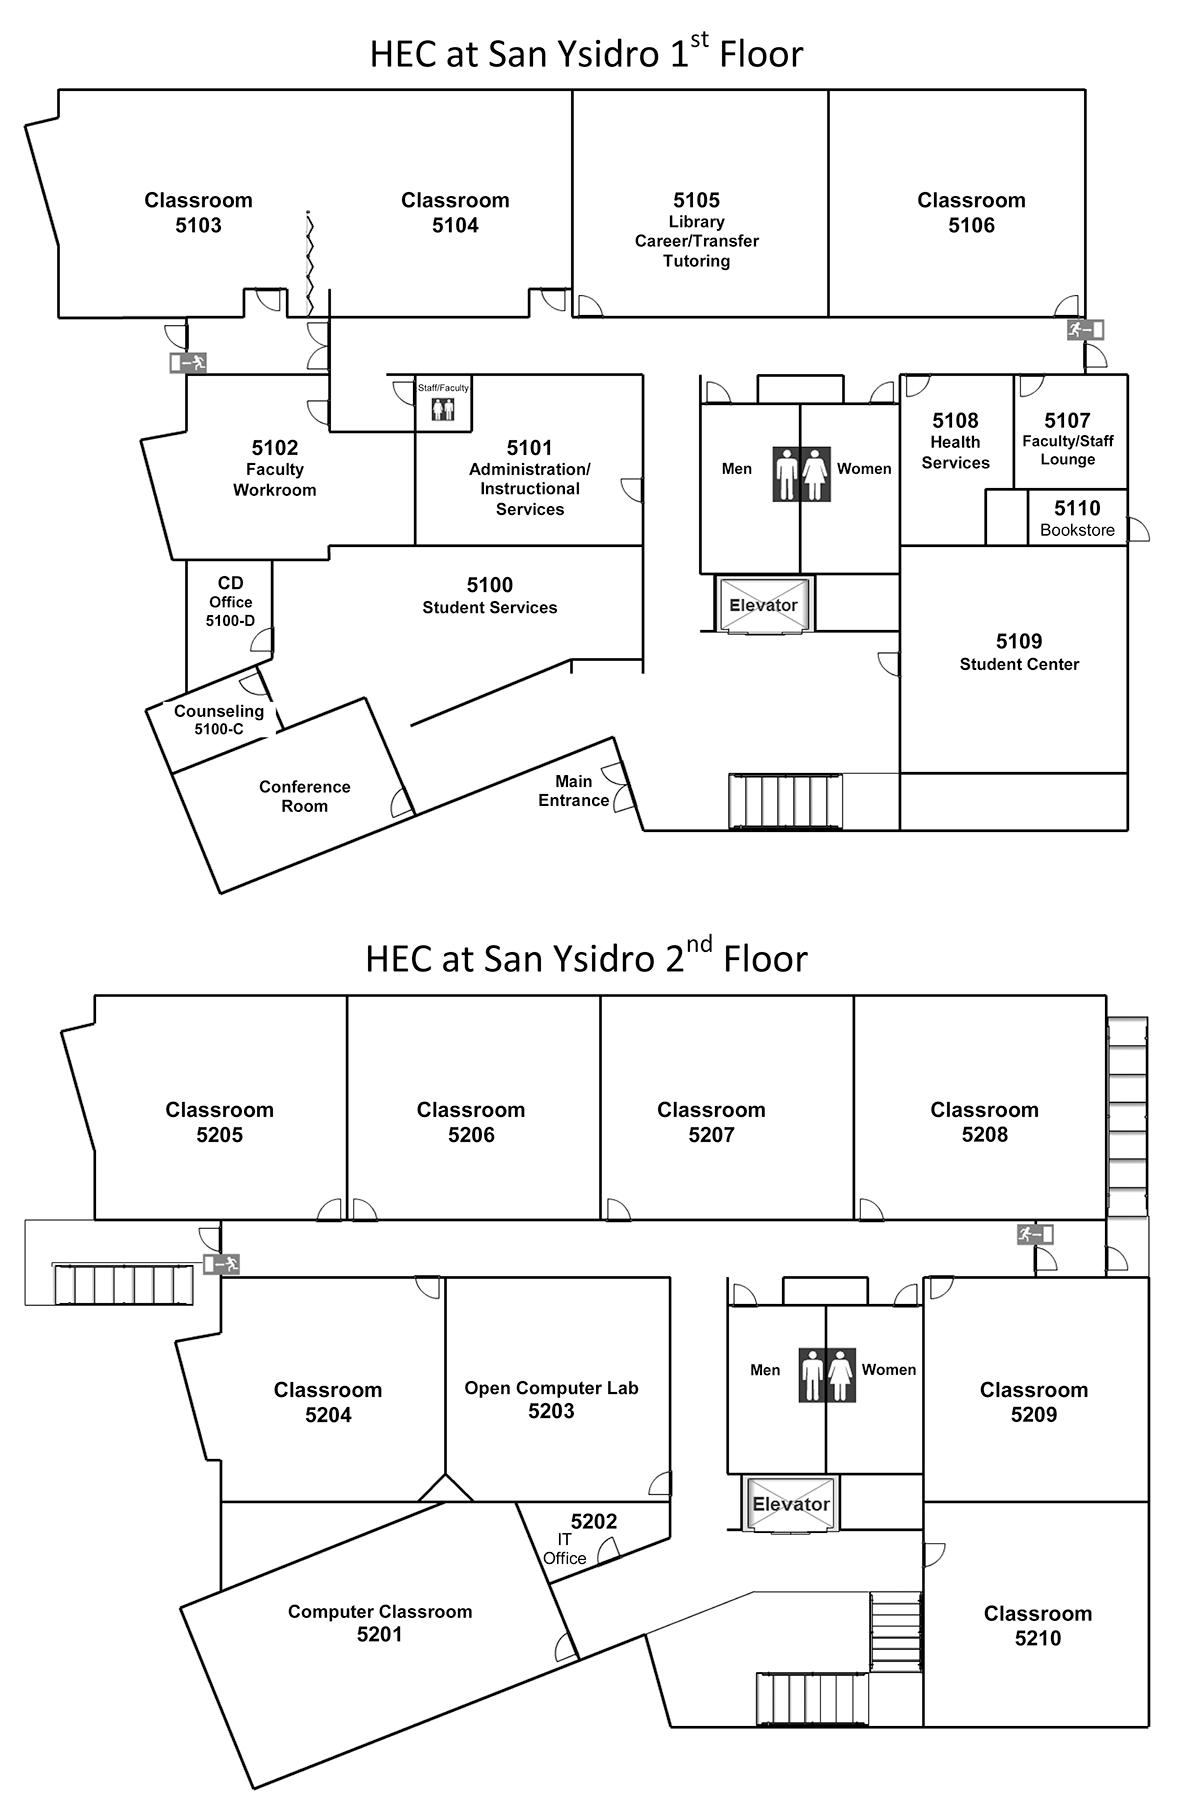 Campus Map for HEC San Ysidro